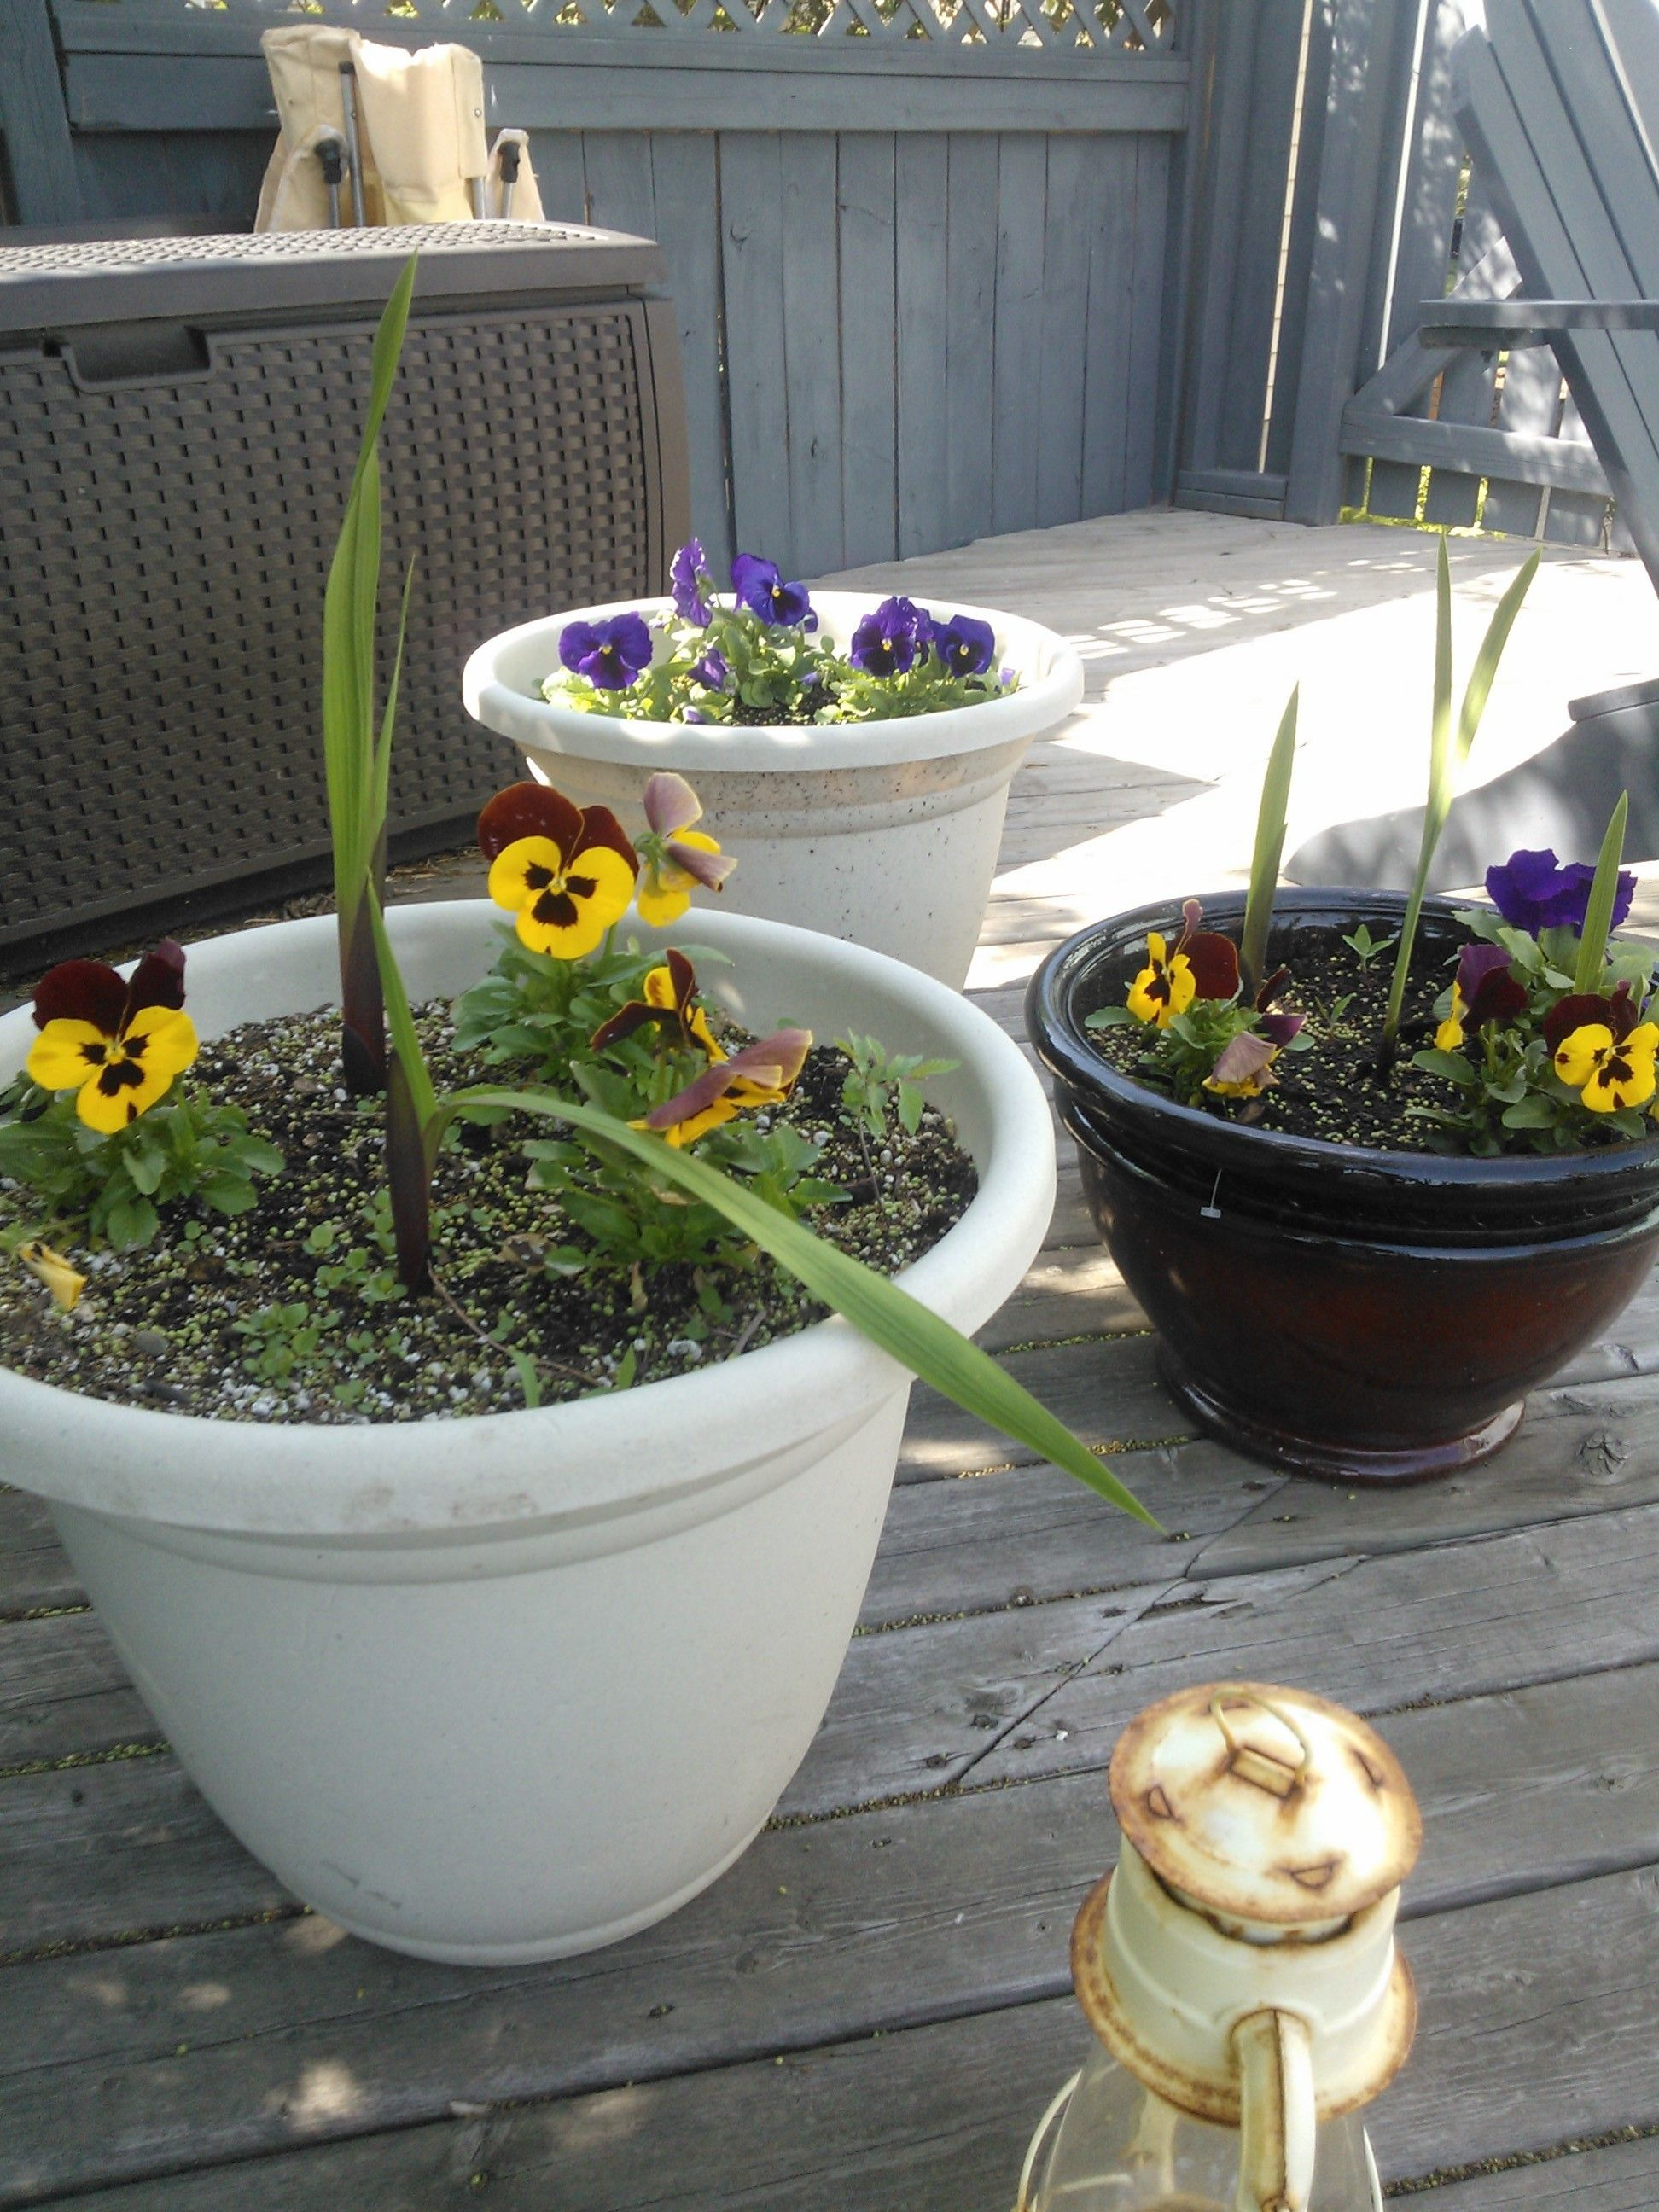 This is my new plan for the pots on the deck plant low growing this is my new plan for the pots on the deck plant low growing annuals with tall flowers that will bloom later that way i have instant colour and later izmirmasajfo